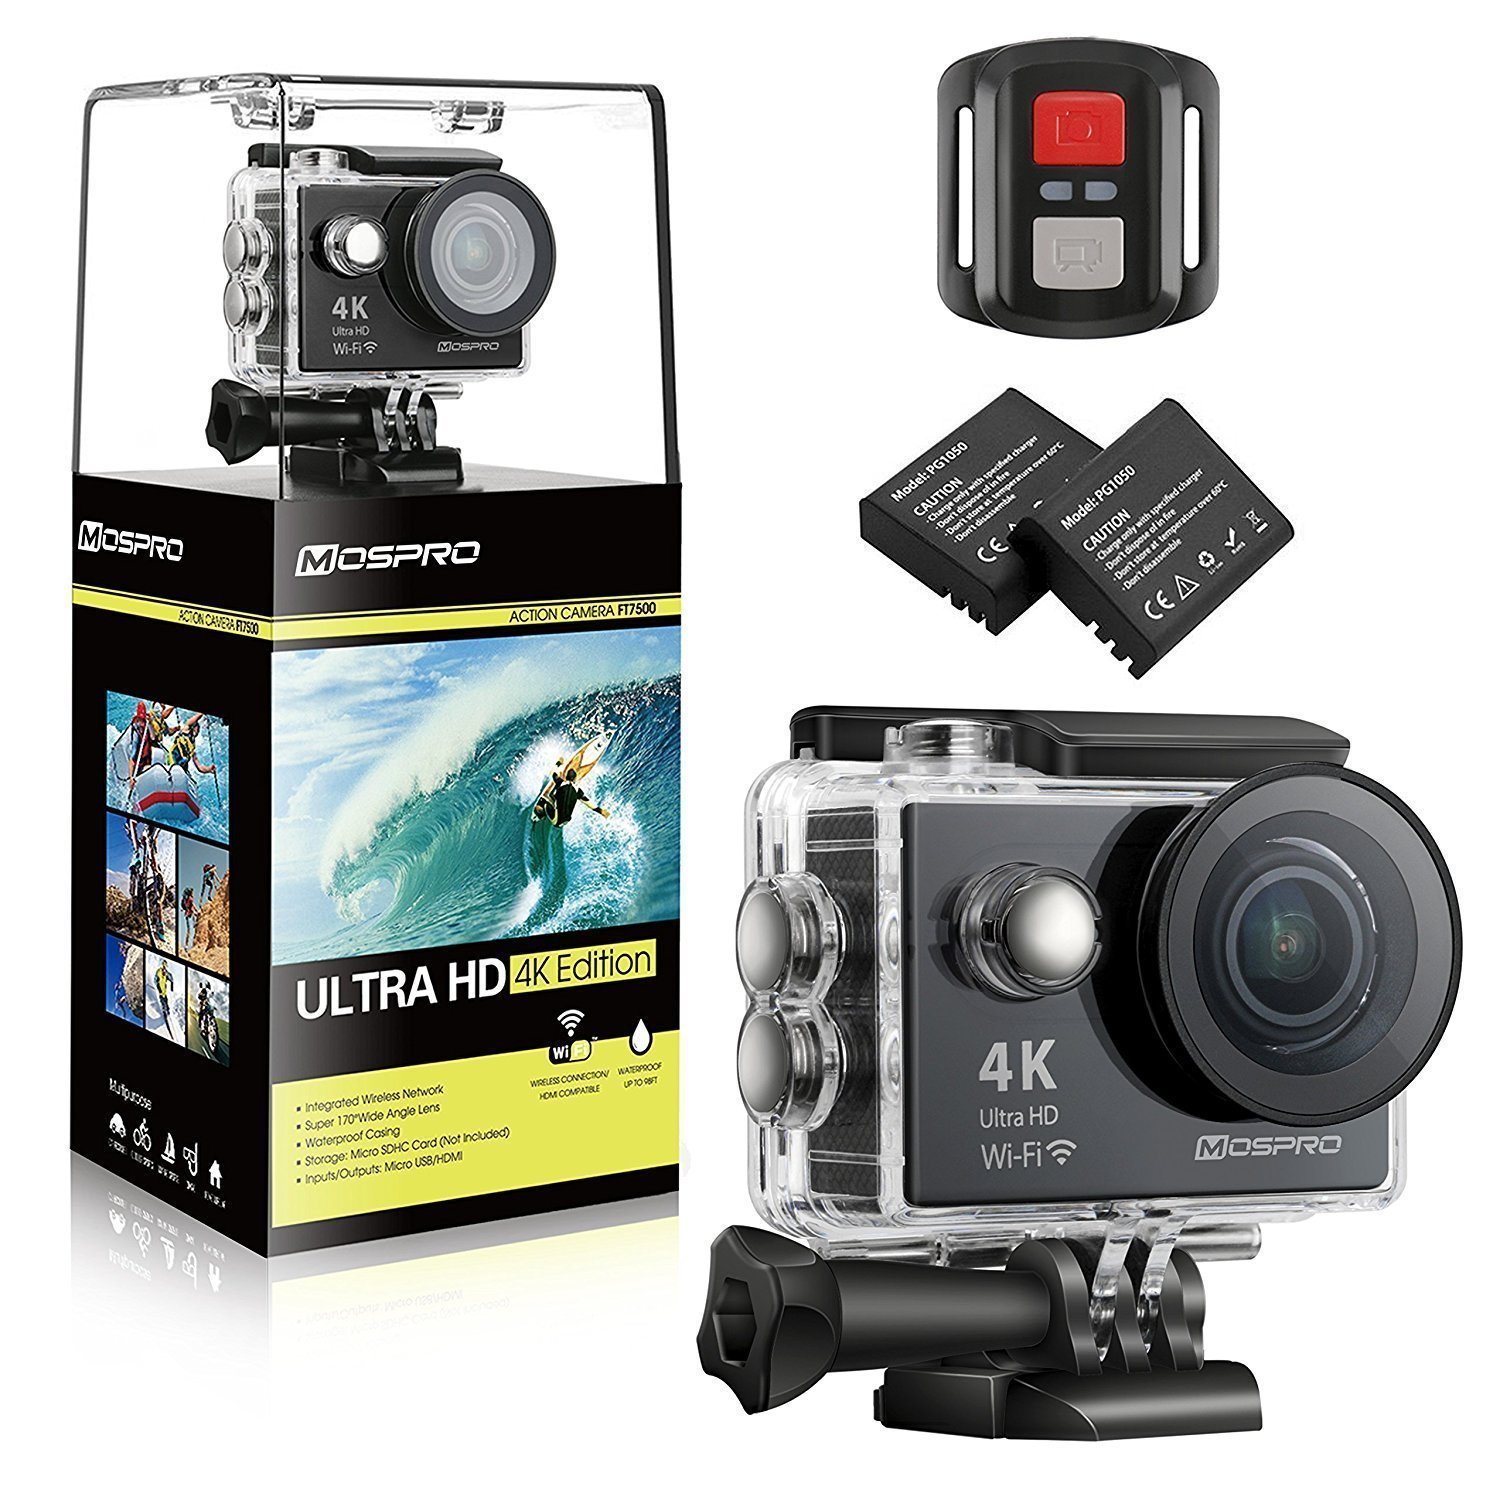 MOSPRO FT7500 Action Camera